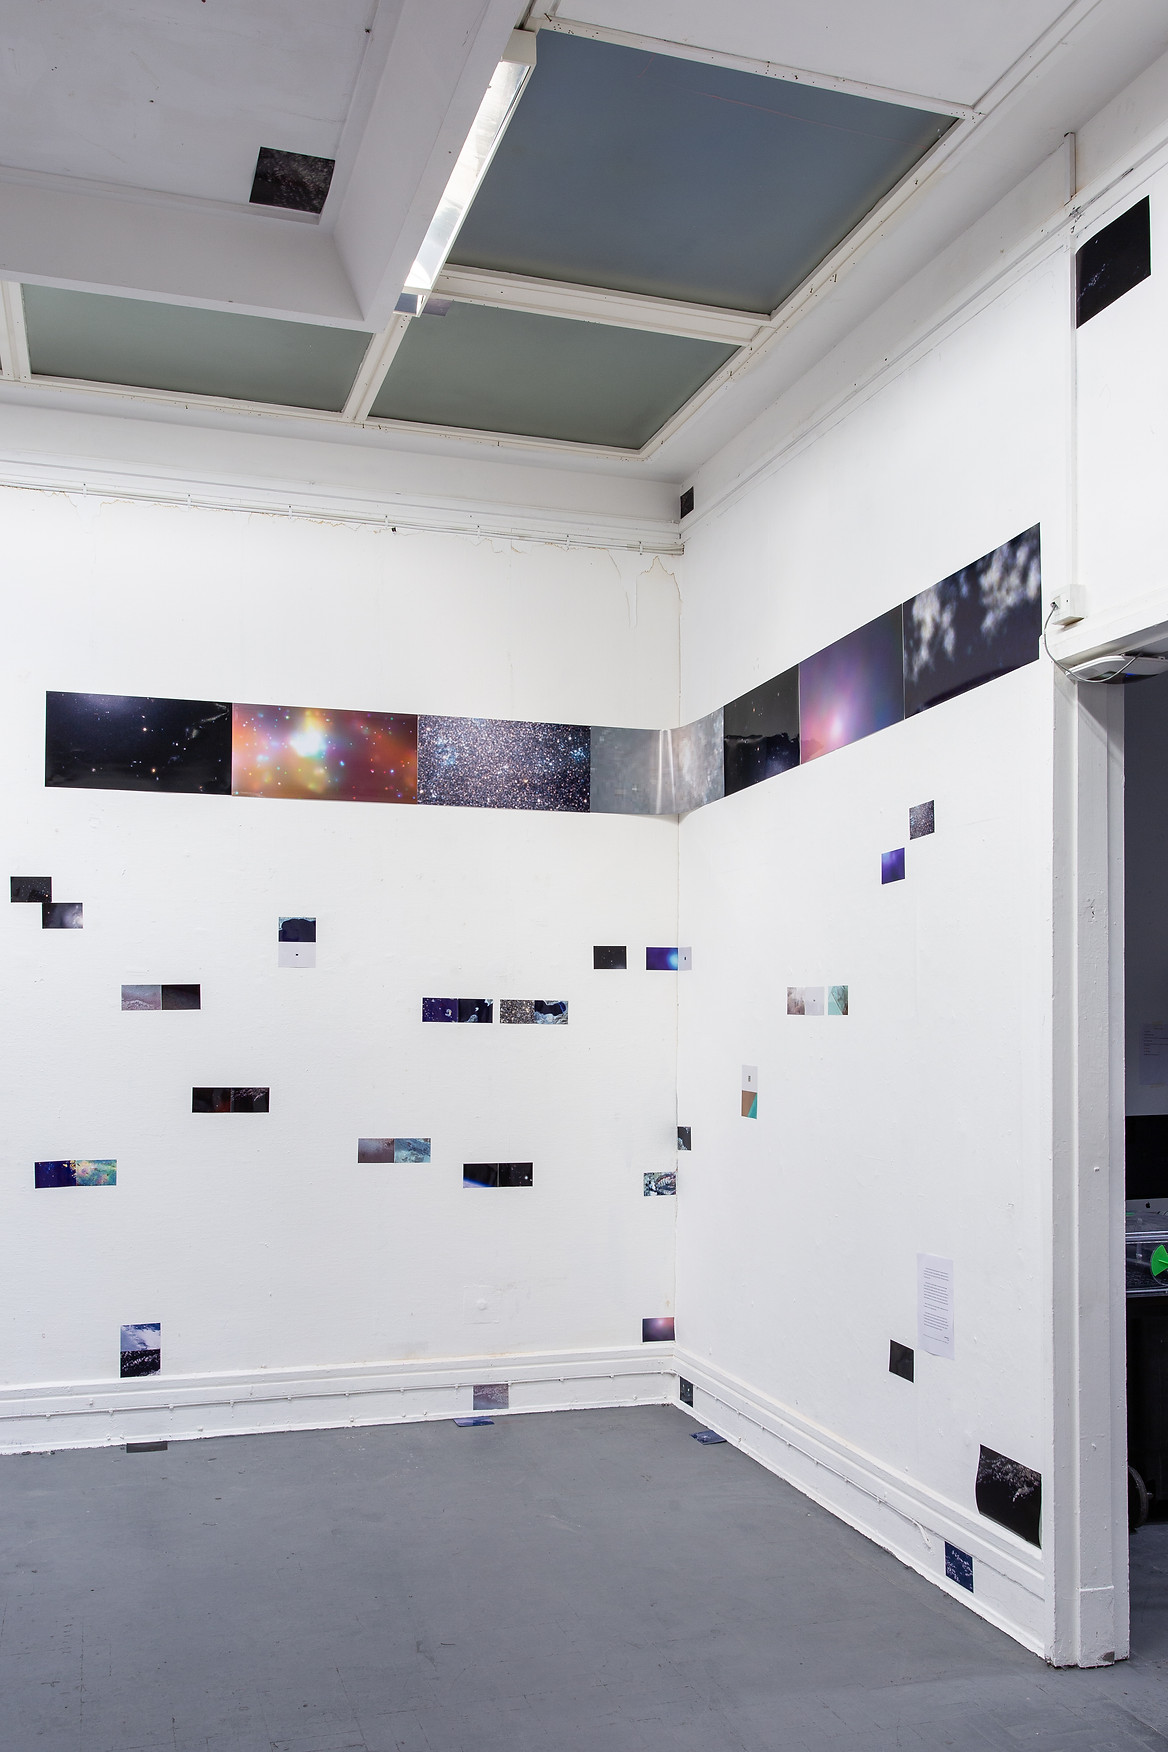 18.  Installation view of London Summer